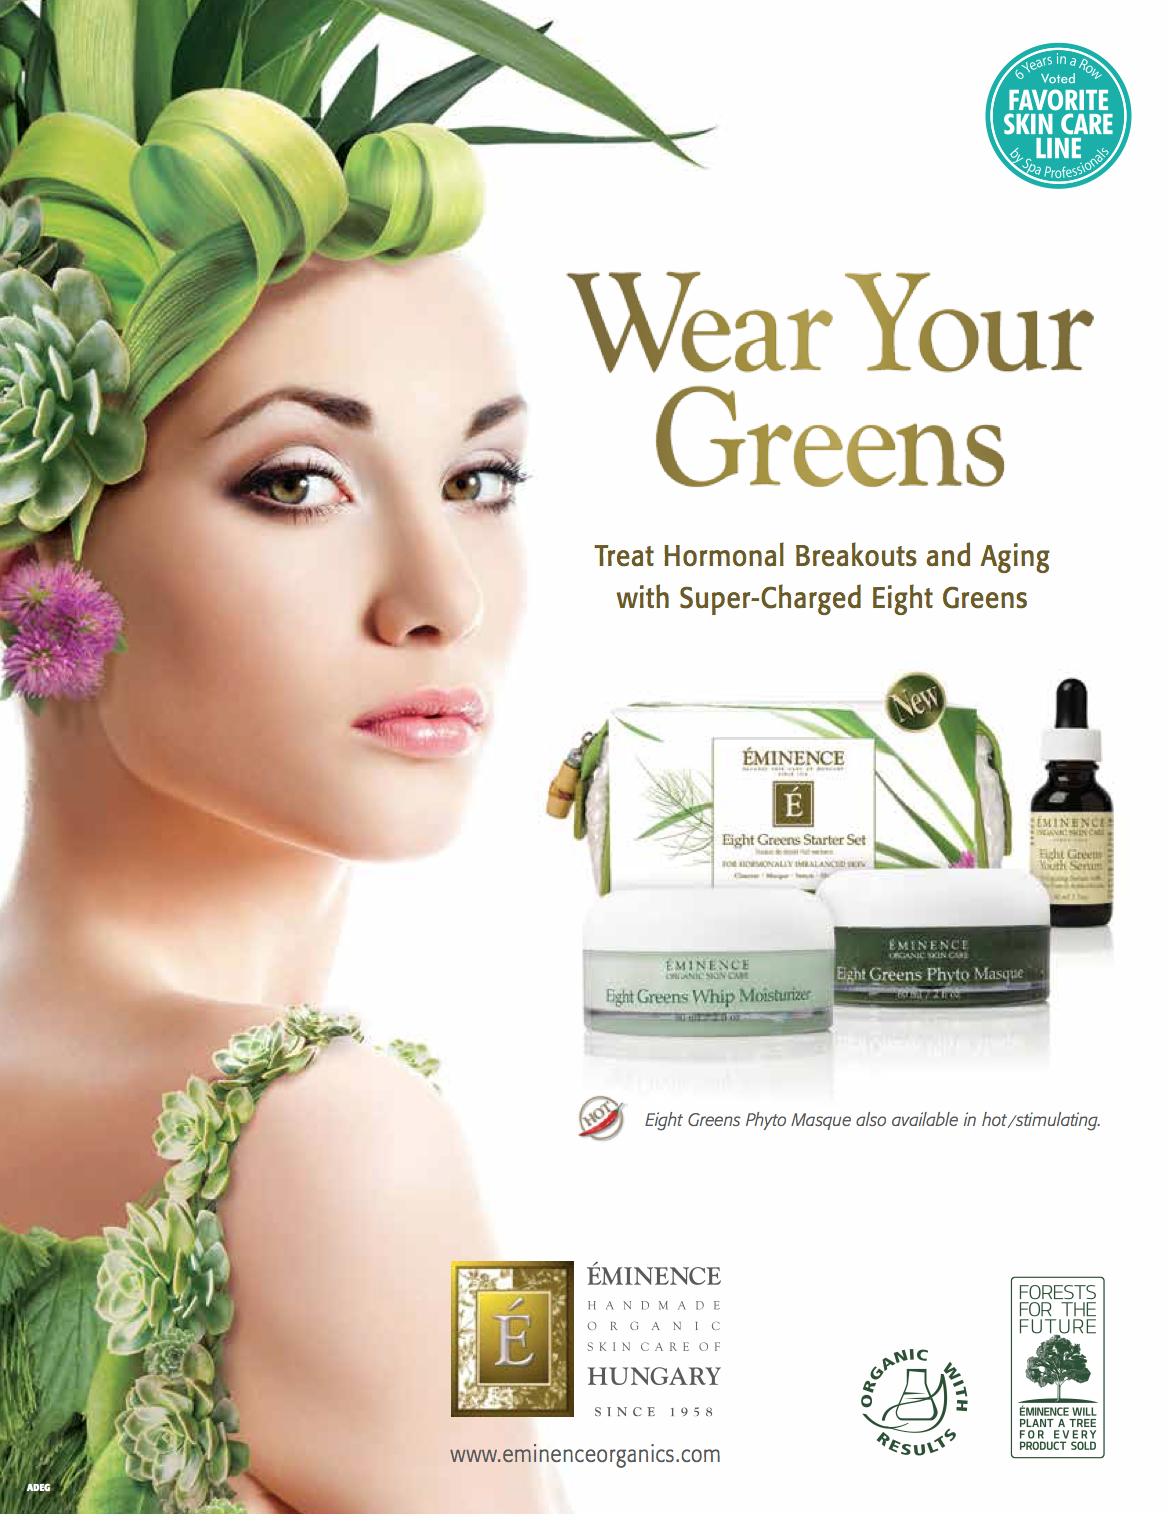 Treat hormonal breakouts and aging with super-charged eight greens.